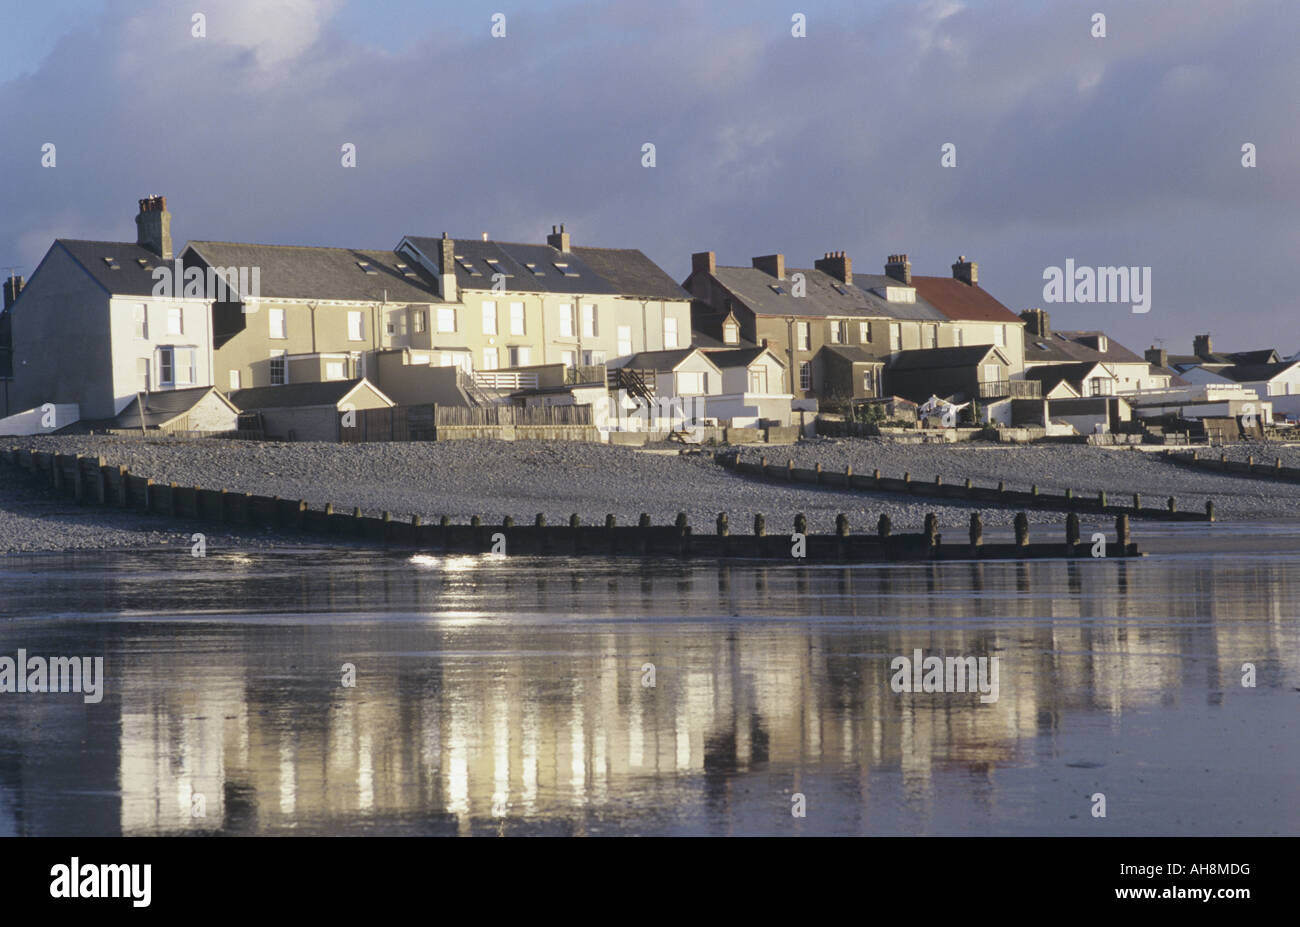 Reflections of houses in wet sand at Borth, Ceredigion - Stock Image